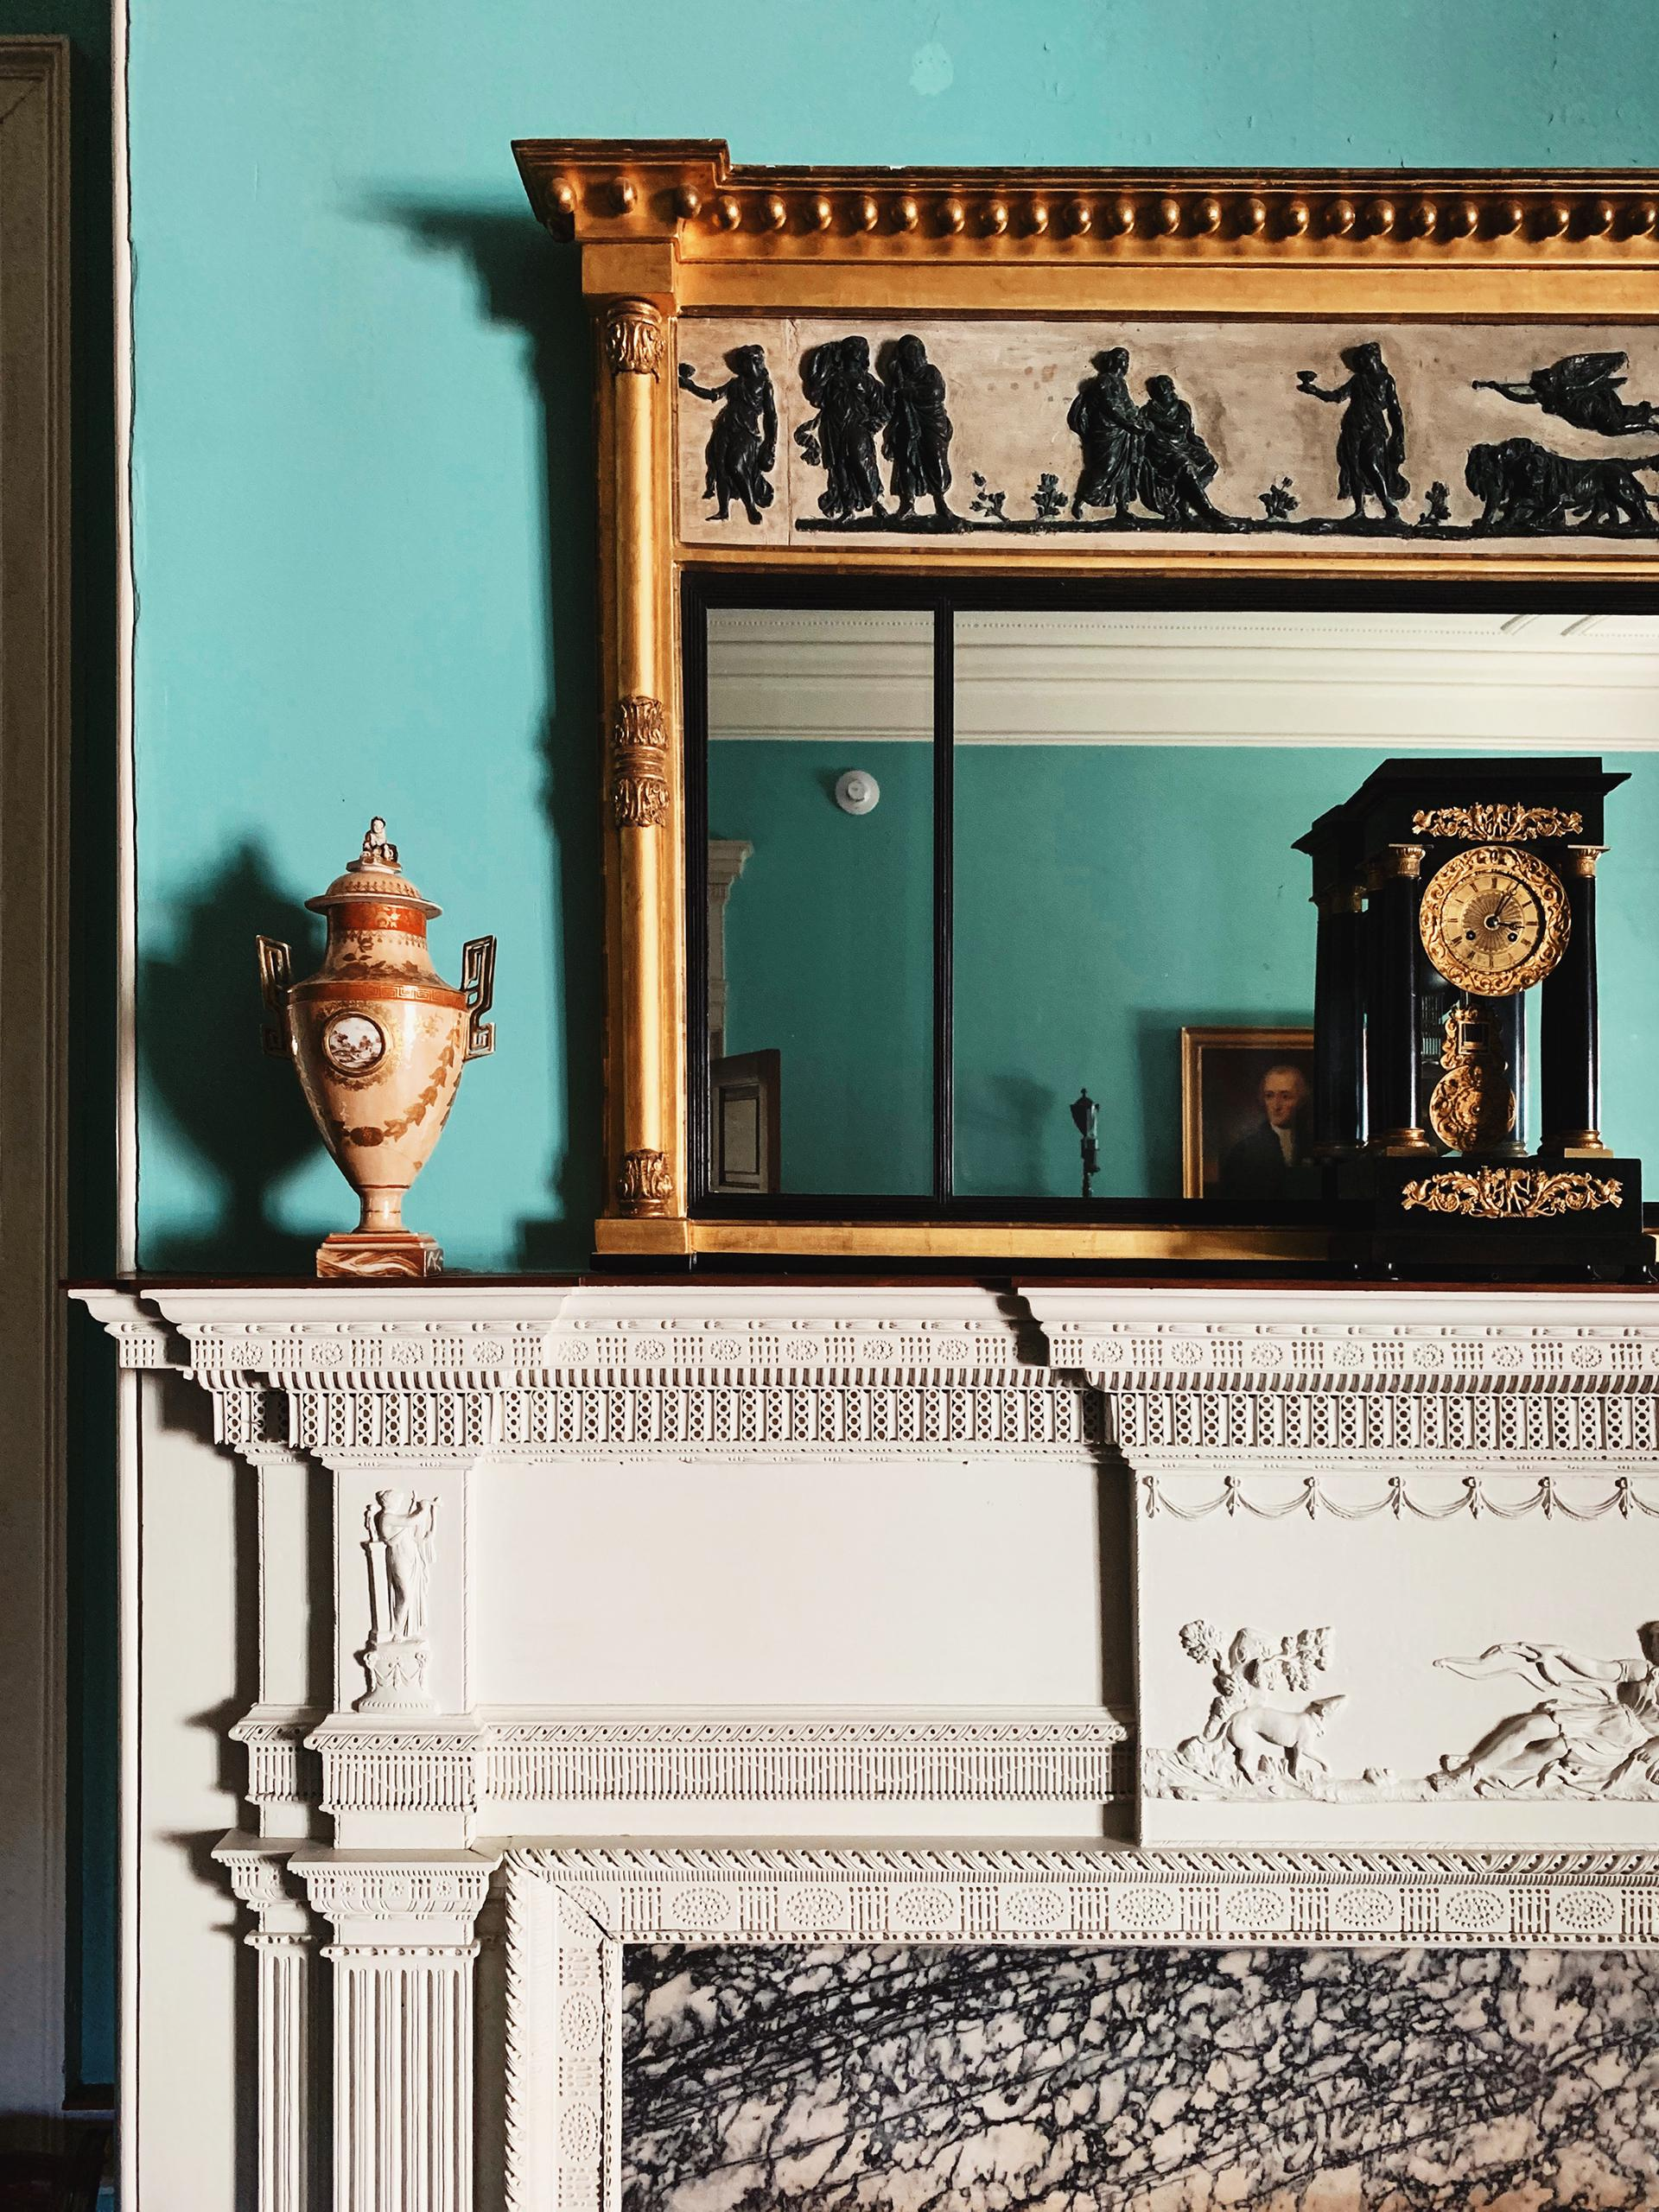 Composite Ornamentation on the fireplace mantel with a looking glass above